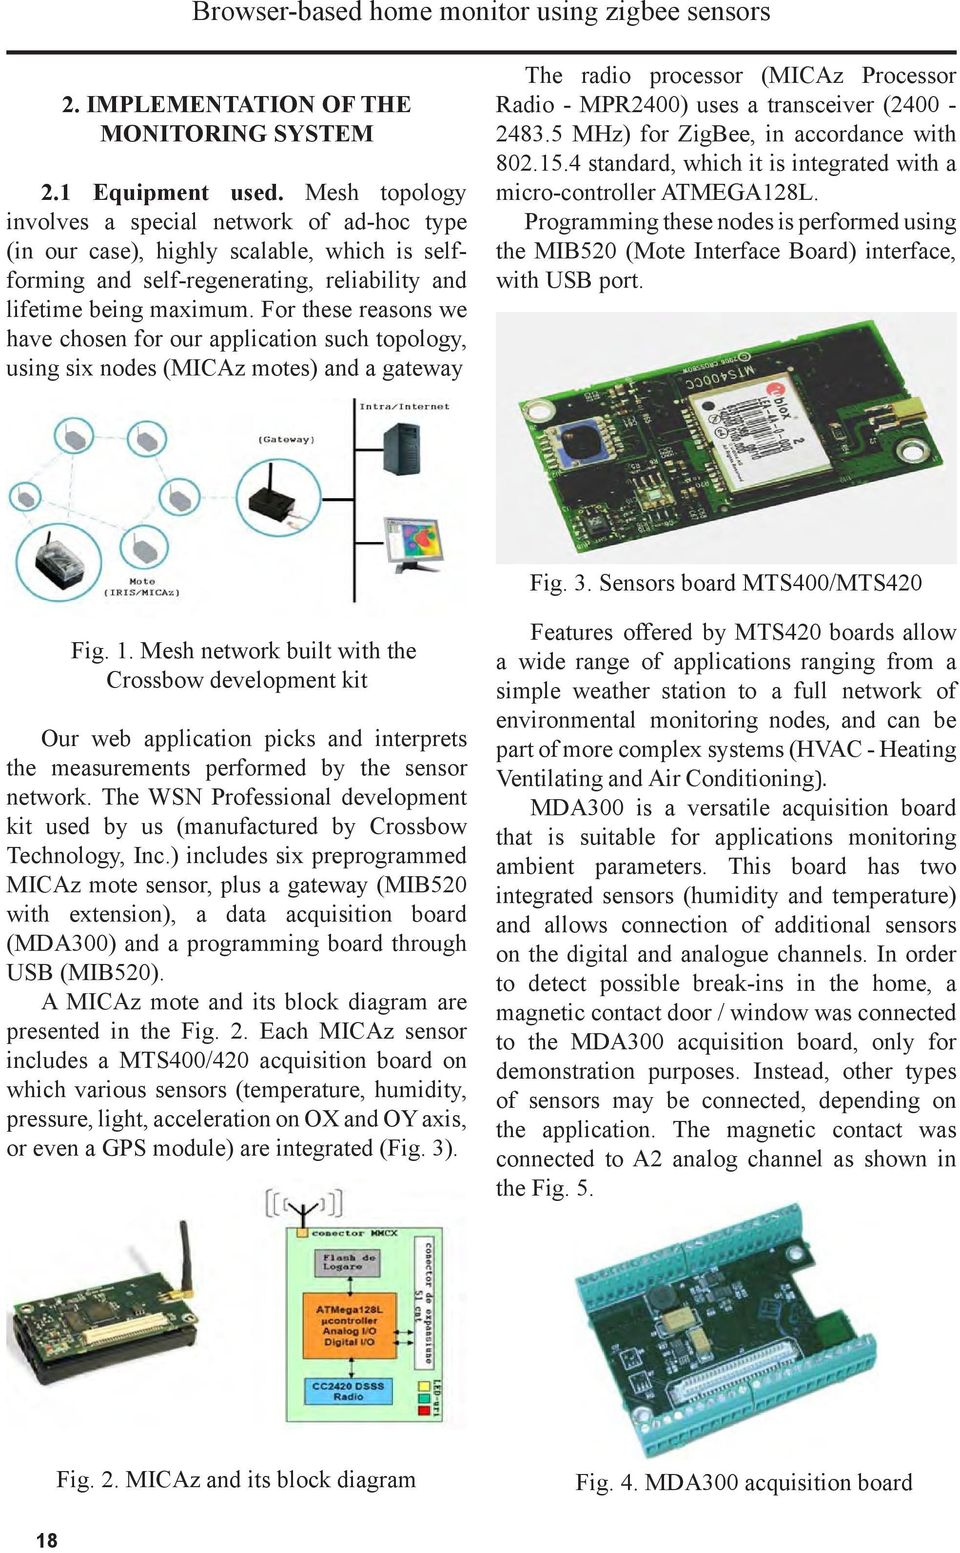 For these reasons we have chosen for our application such topology, using six nodes (MICAz motes) and a gateway The radio processor (MICAz Processor Radio - MPR2400) uses a transceiver (2400-2483.